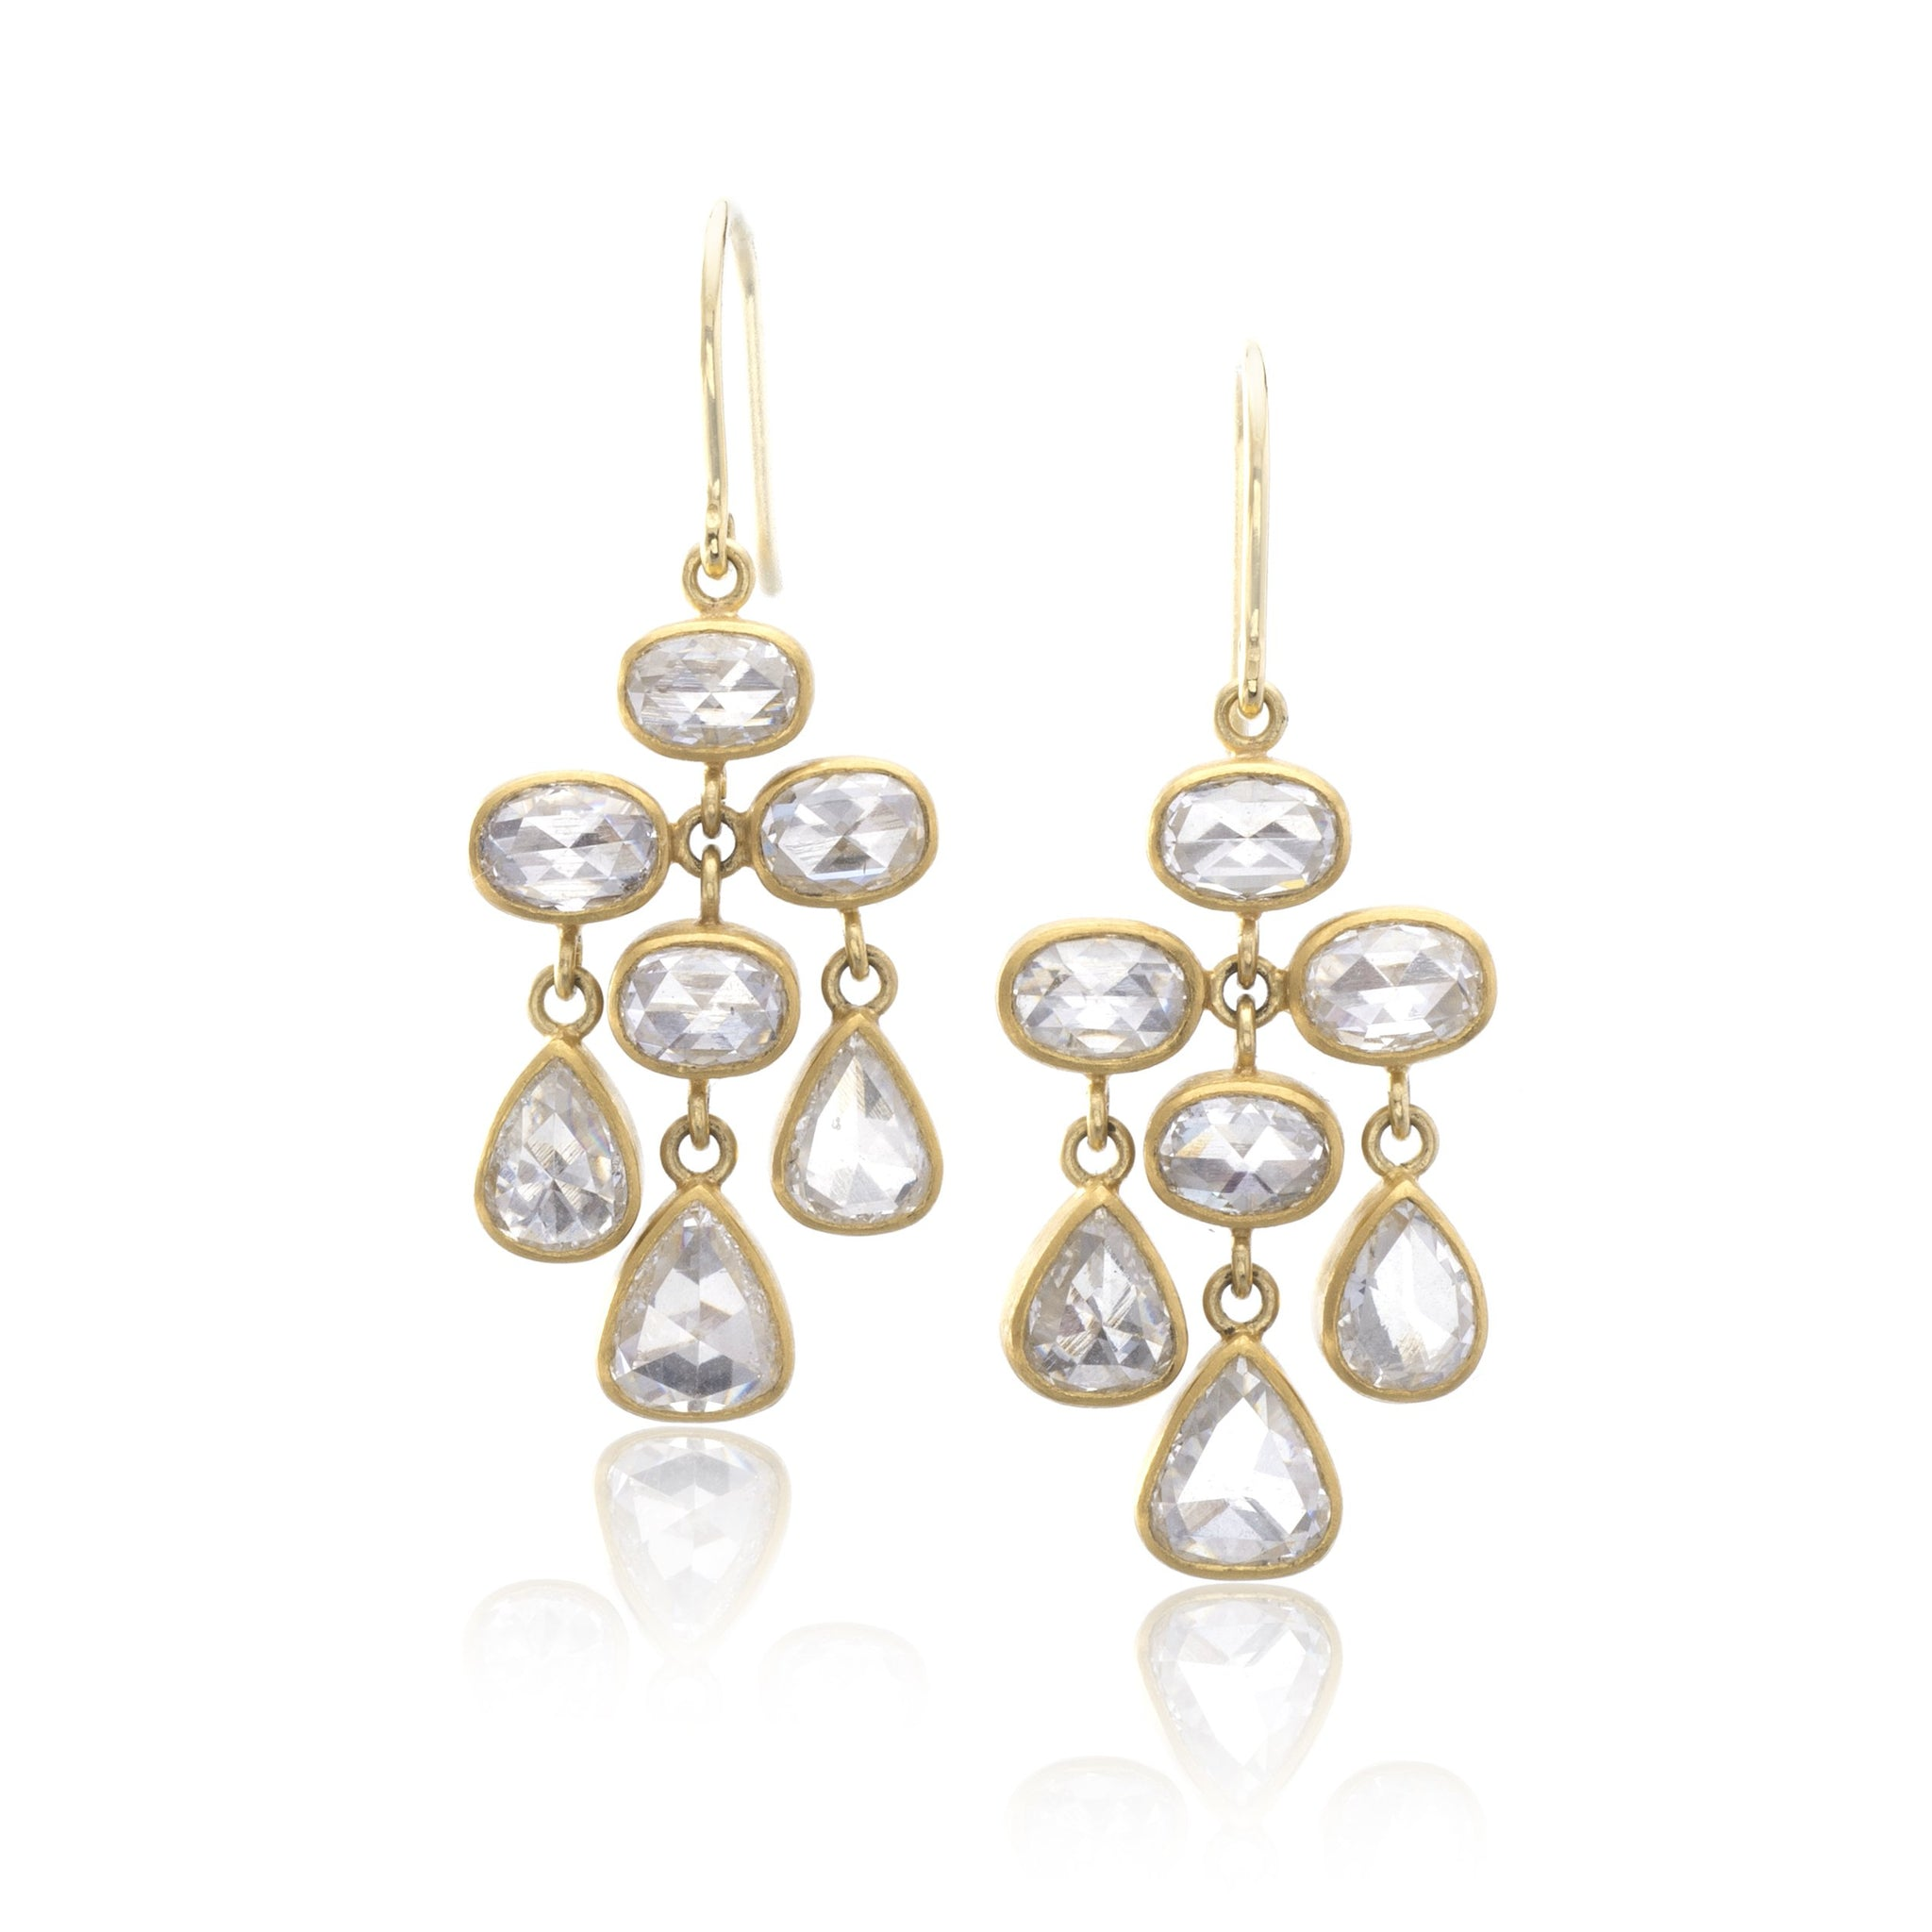 22K and 18K Yellow Gold Trapeze Diamond Earrings